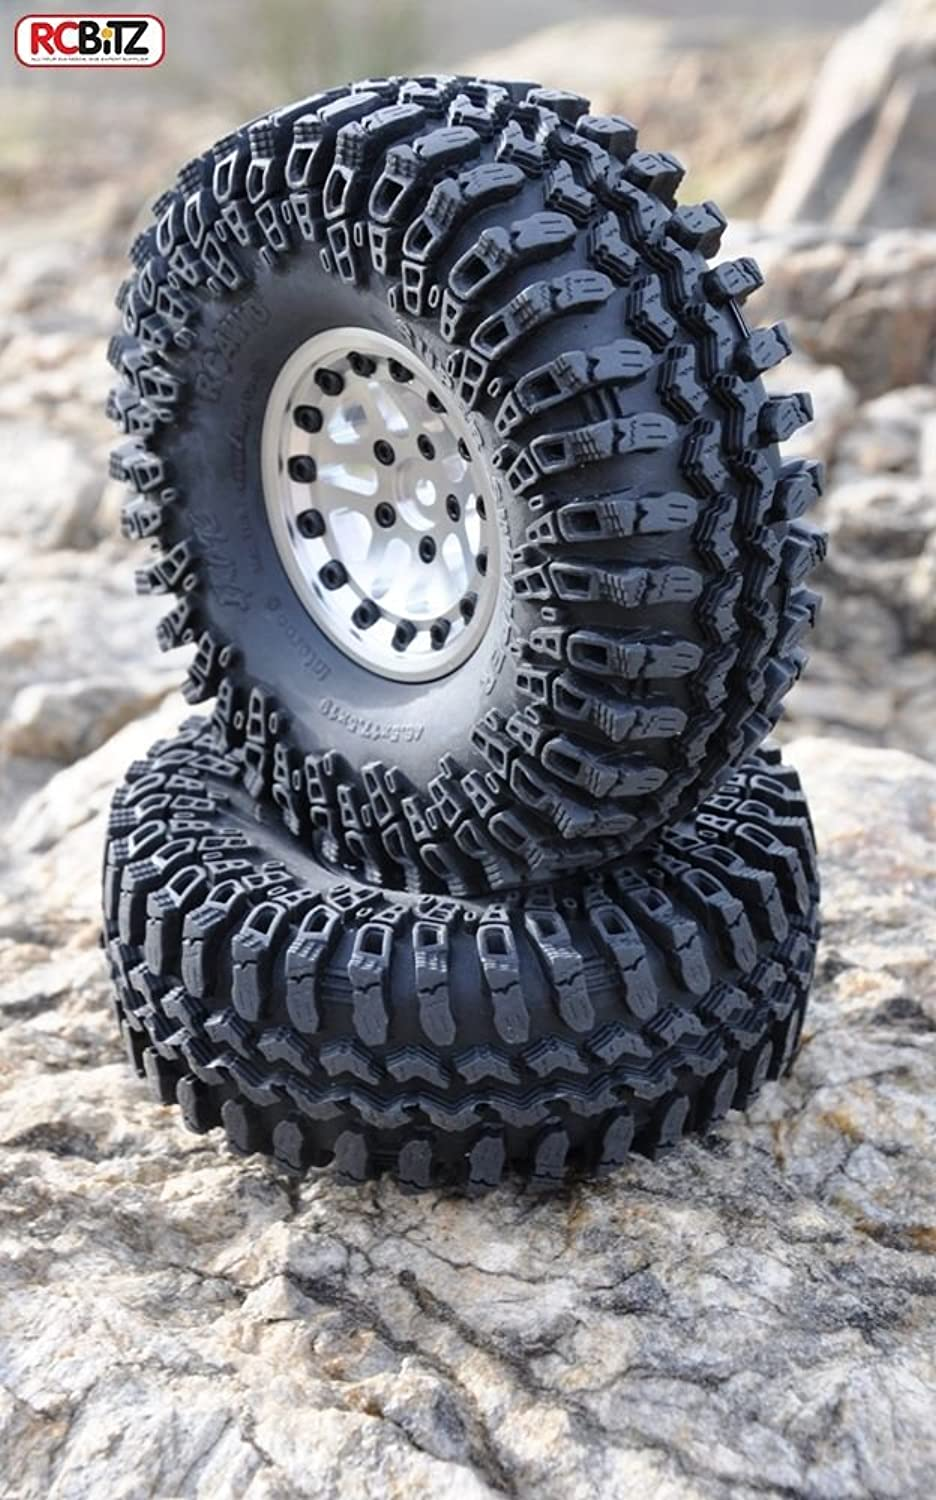 RC4WD Z-T0054 Interco IROK 1.9 Scale Tire by RC4WD B004UJF0G6 Produktqualität  | Charmantes Design